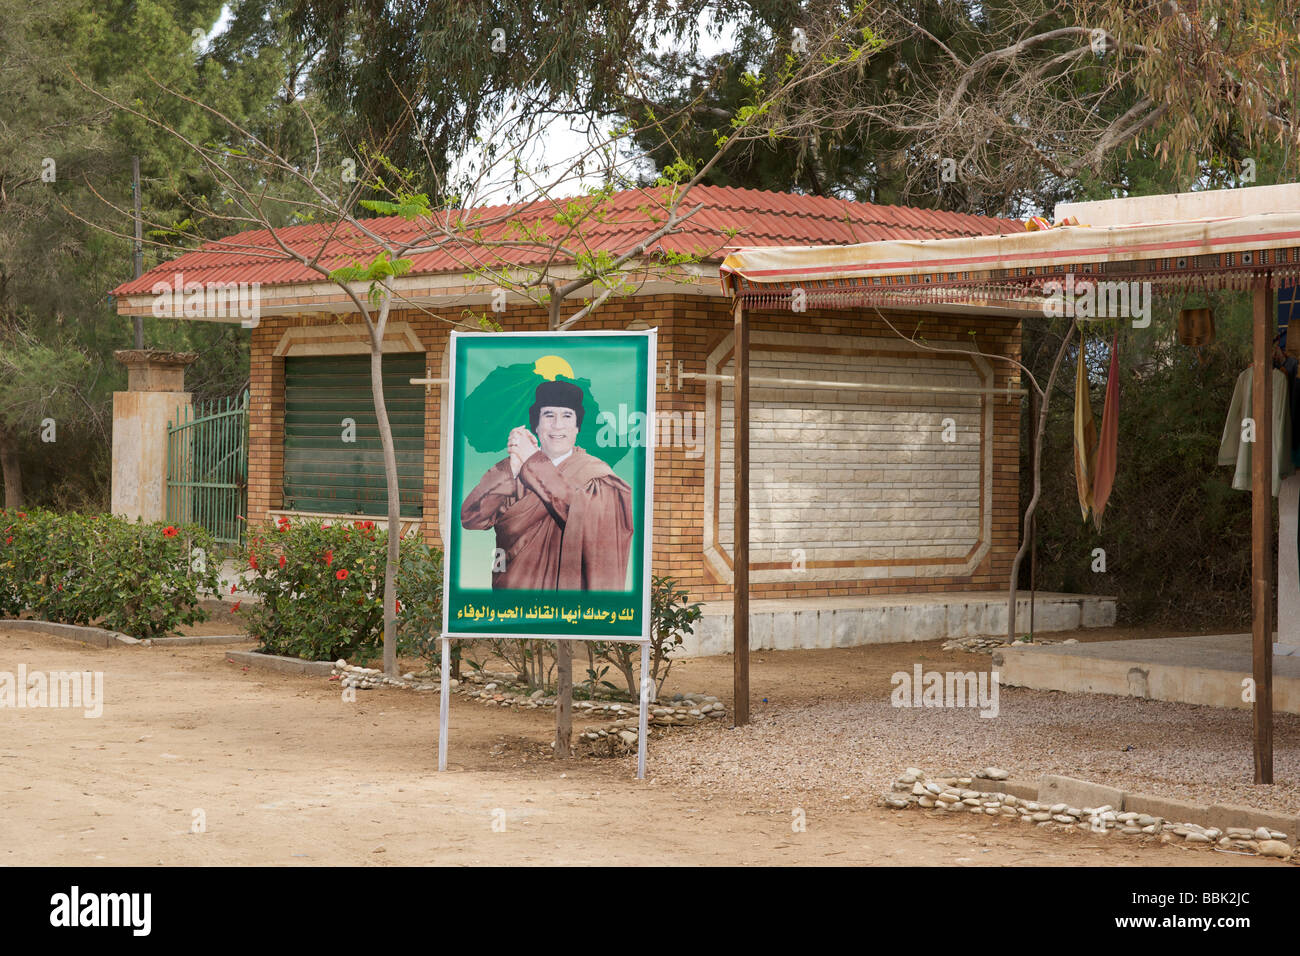 Poster of Colonel Gaddafi at Leptis Magna in Libya - Stock Image